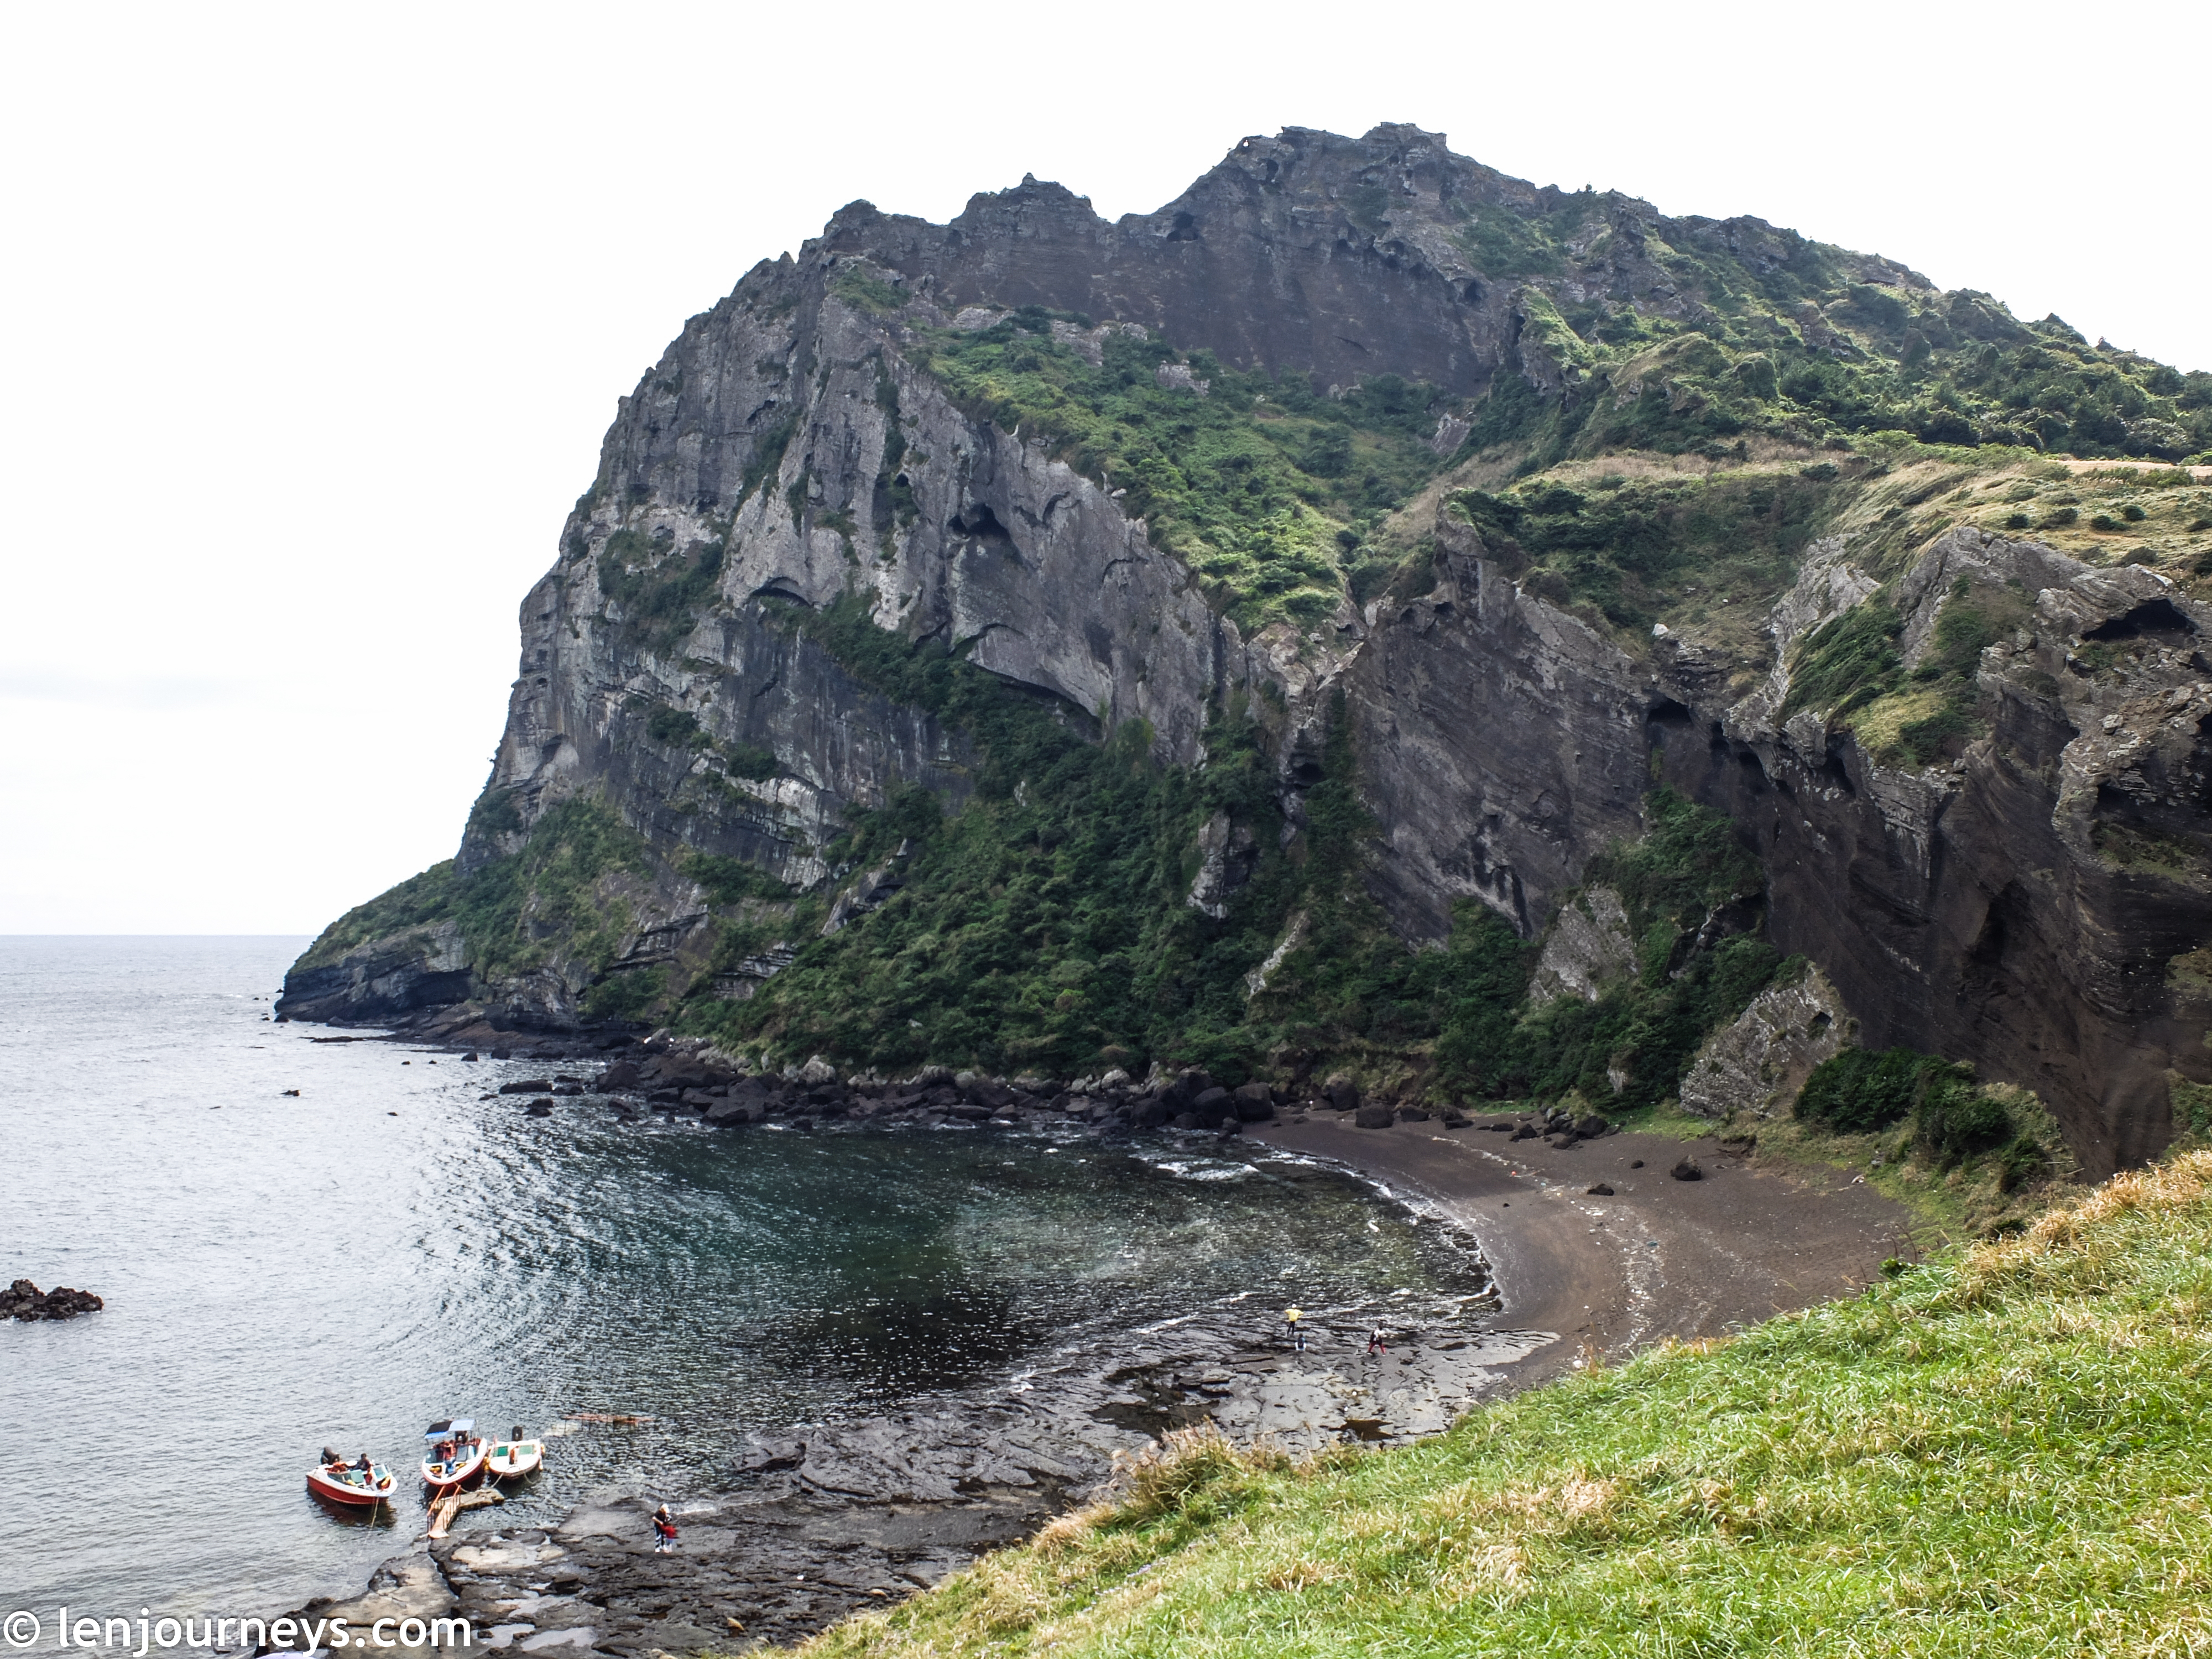 Dramatic rocky outcrop in East Jeju